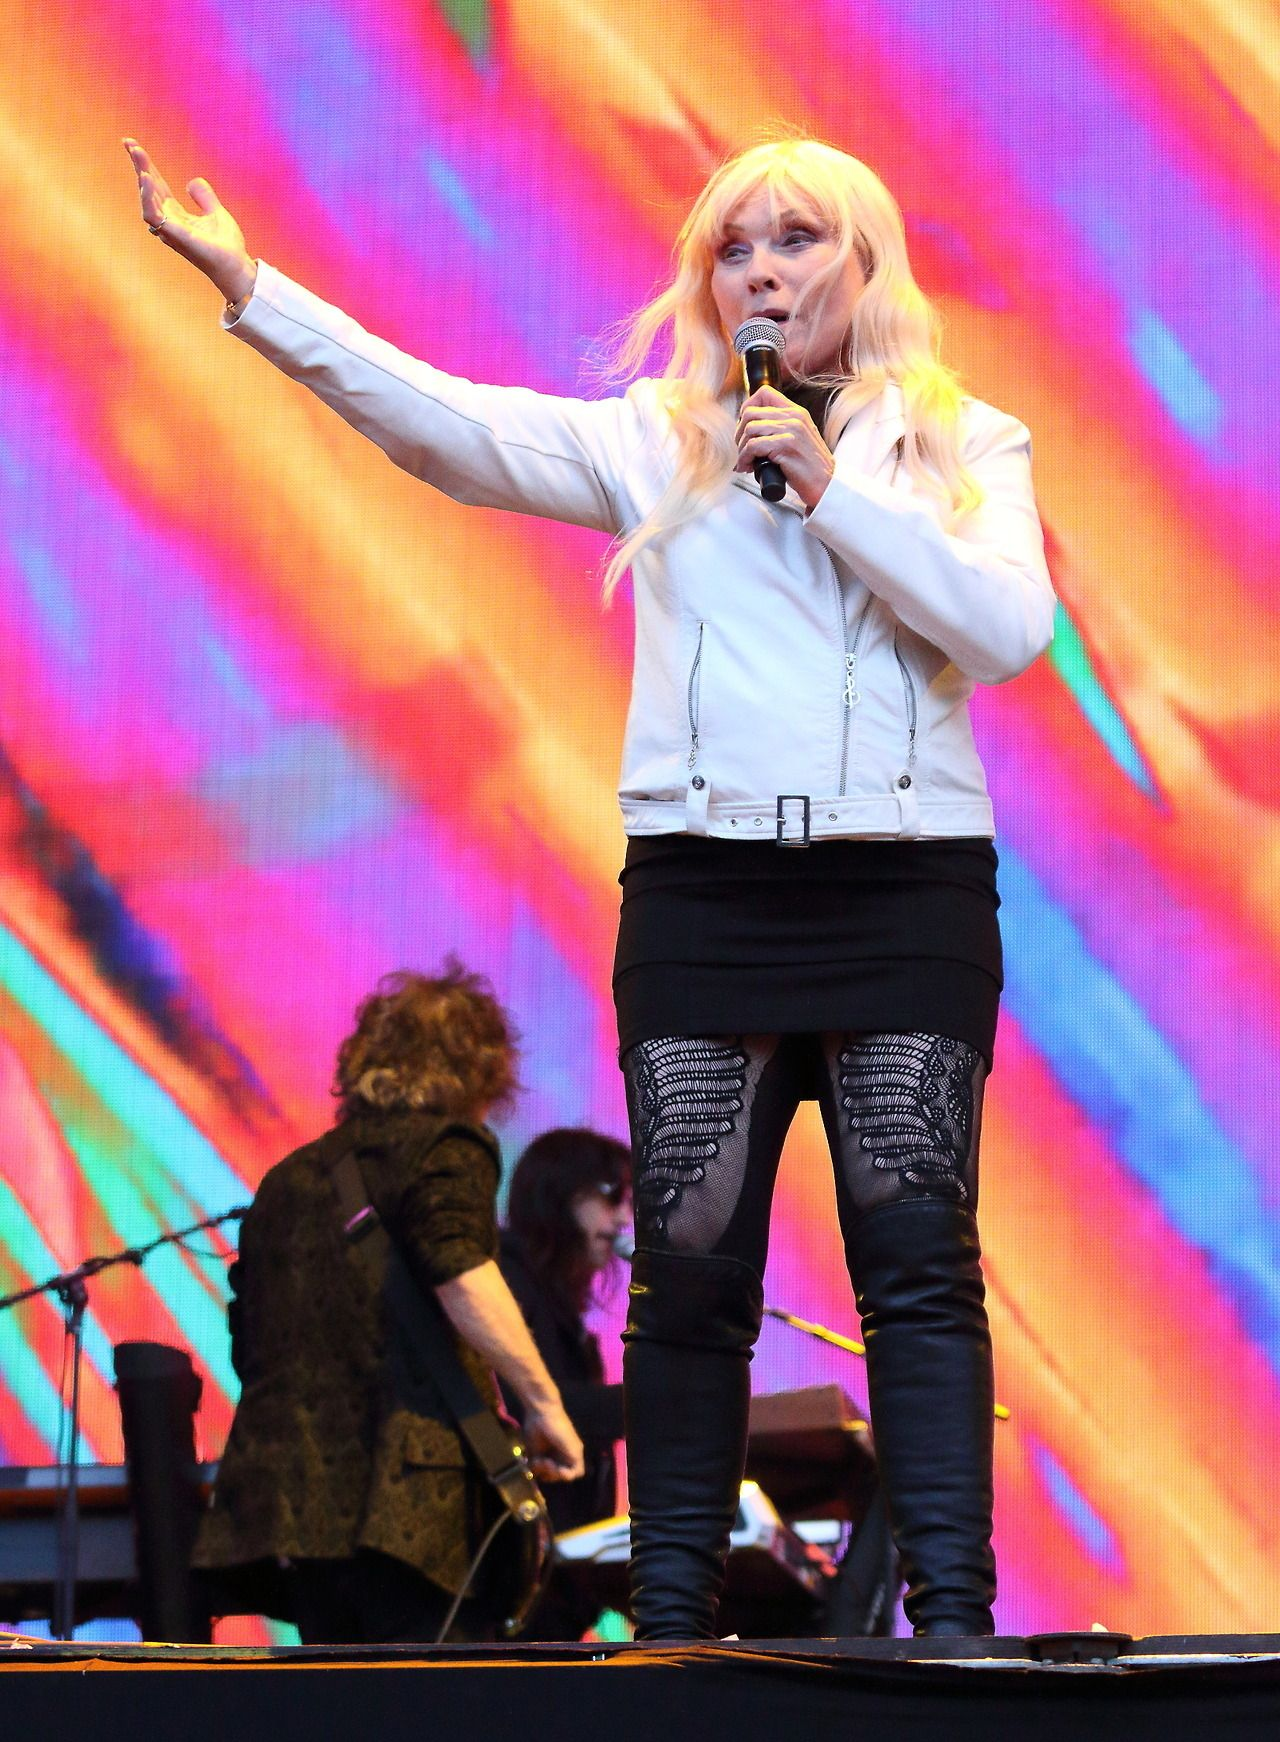 Blondie performs at BBC Radio 2 Live in Hyde Park, London